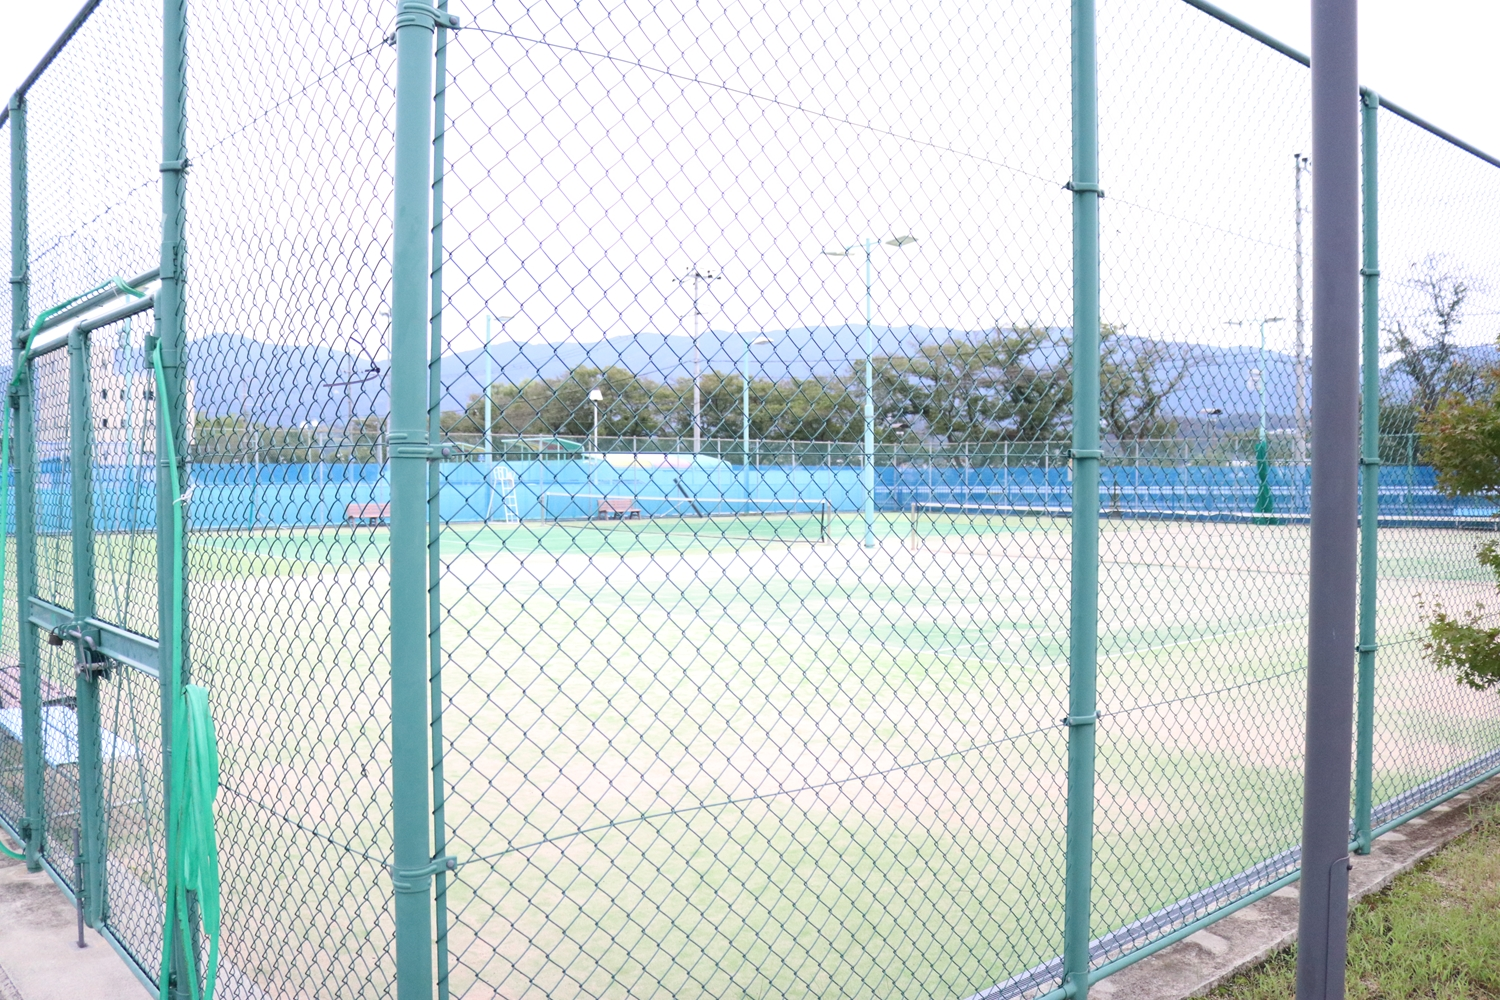 Kudoyama Bunka Sports Center